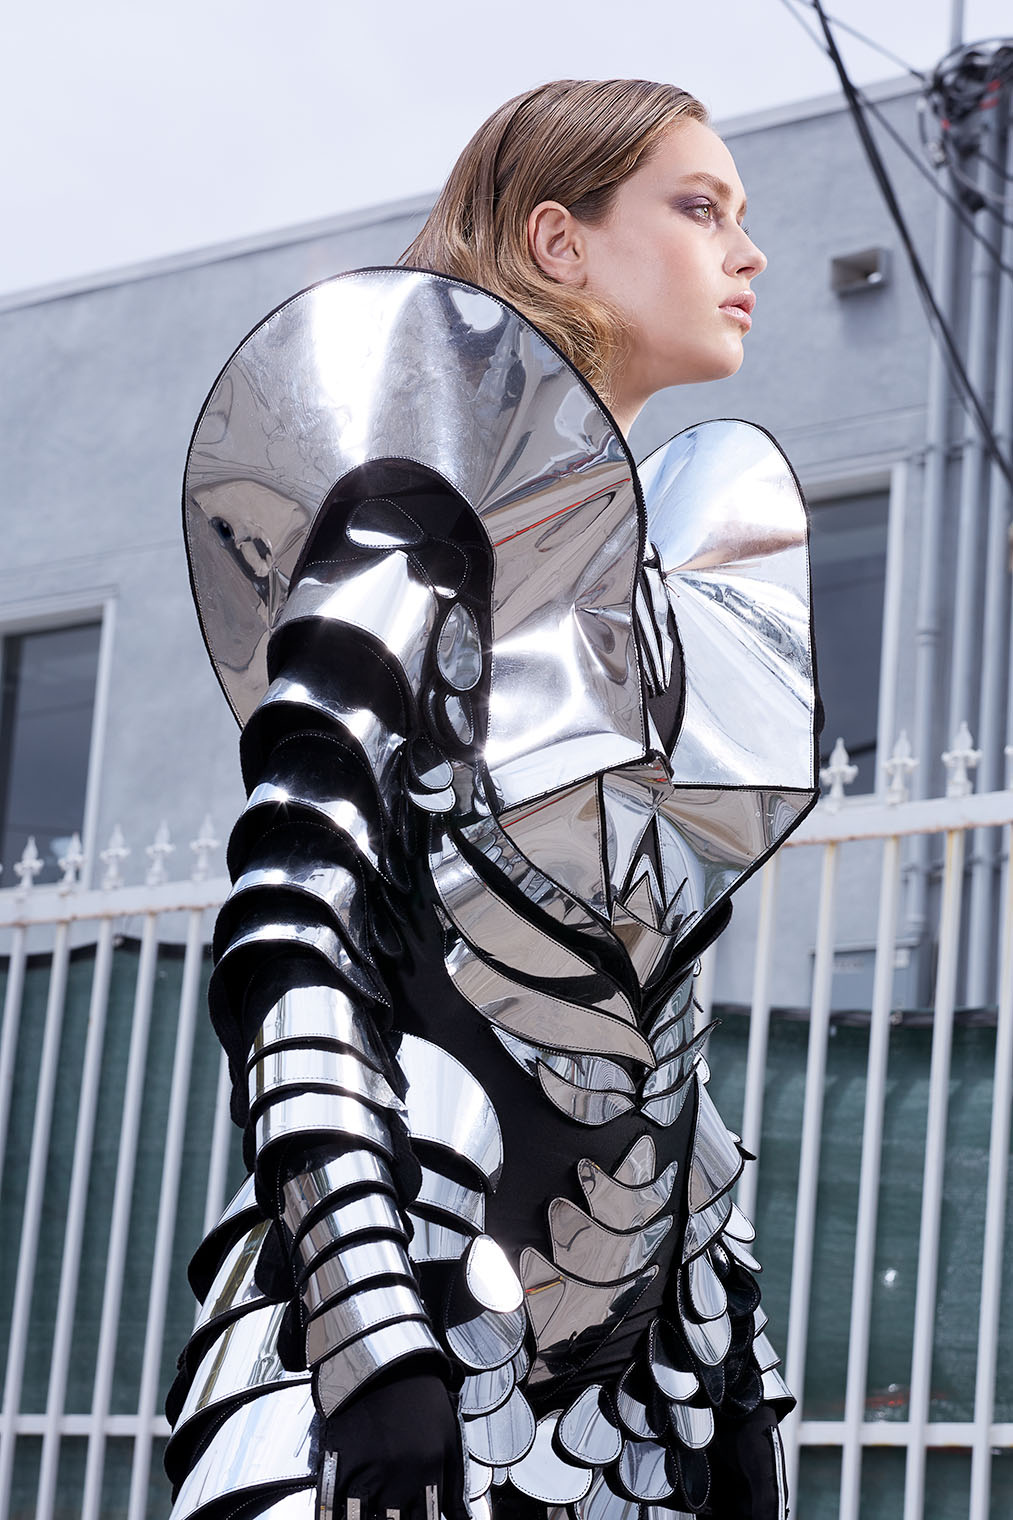 fashion armor woman in Science Fiction Fashion Story - campaign